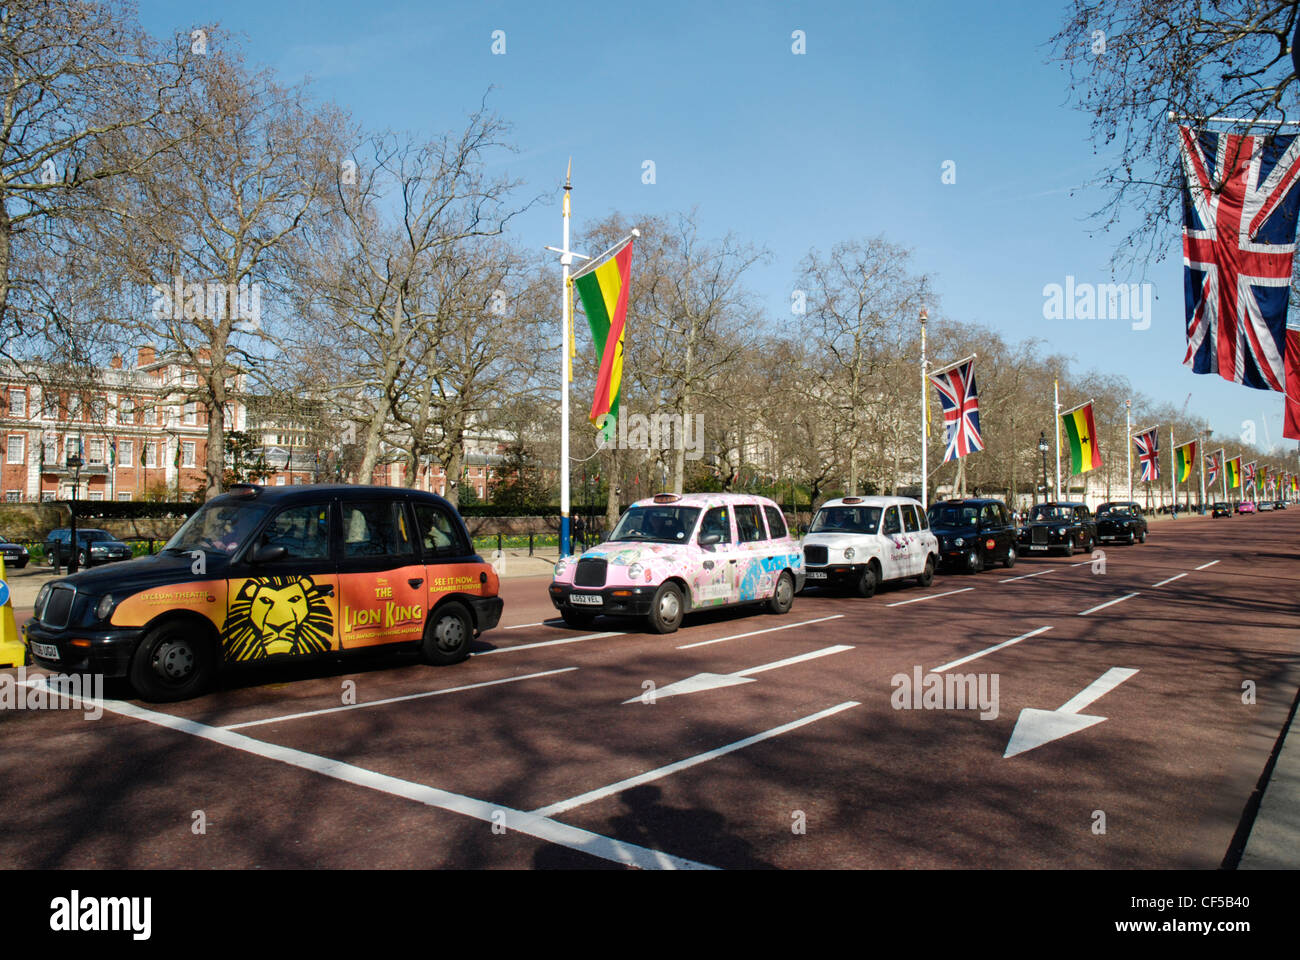 Taxi cabs at the Mall lined with Union Jack and European Union flags. - Stock Image